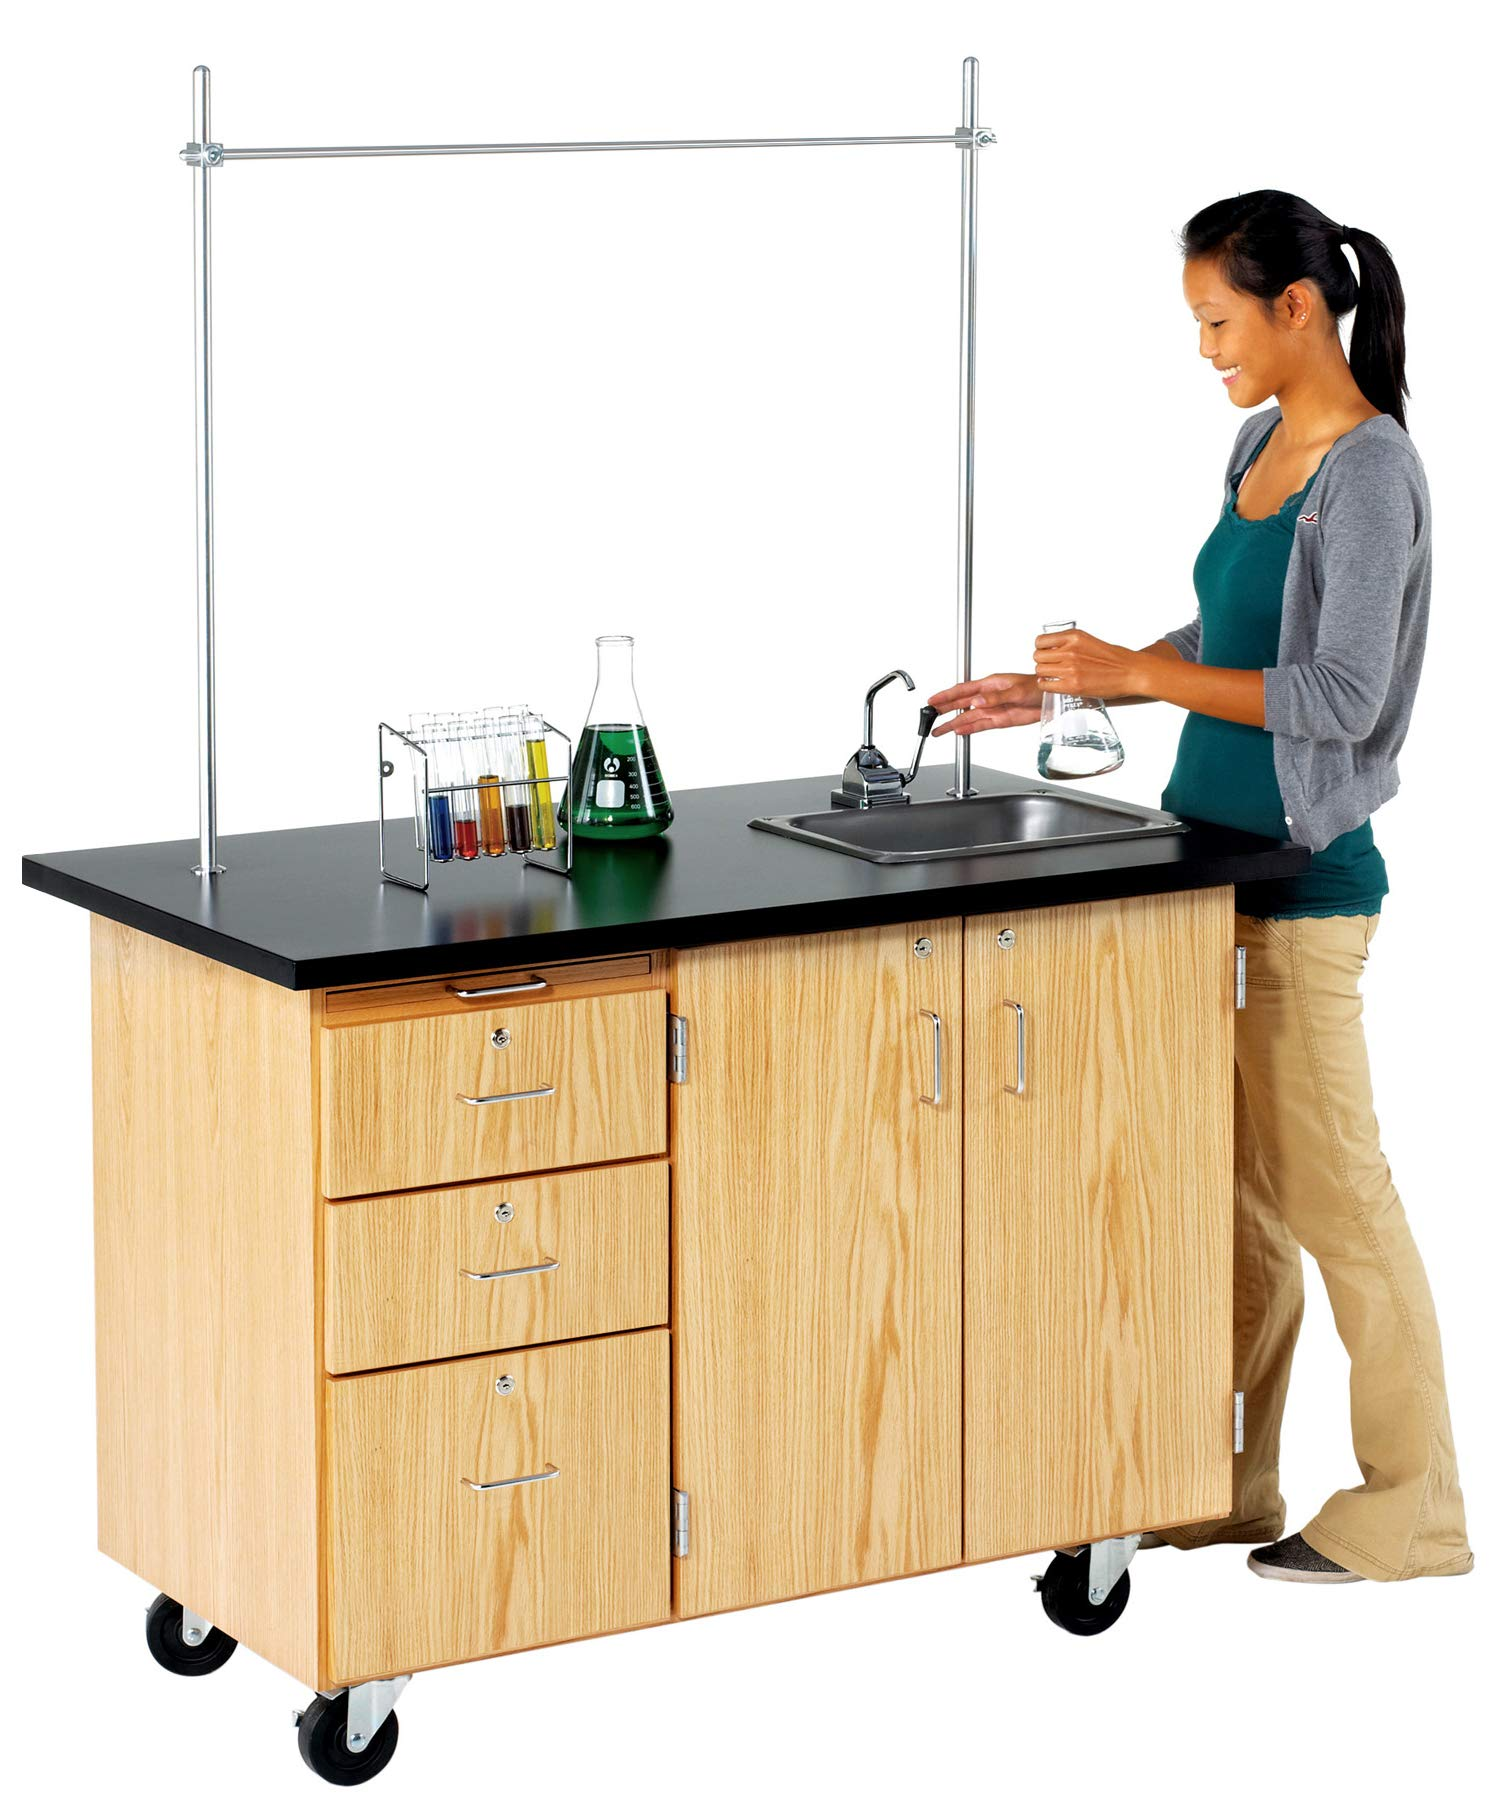 Diversified Woodcrafts 4332K Solid Oak Wood Mobile Instructor's Desk with Storage, ChemGuard Top, 48'' width, 36'' height, 28'' depth